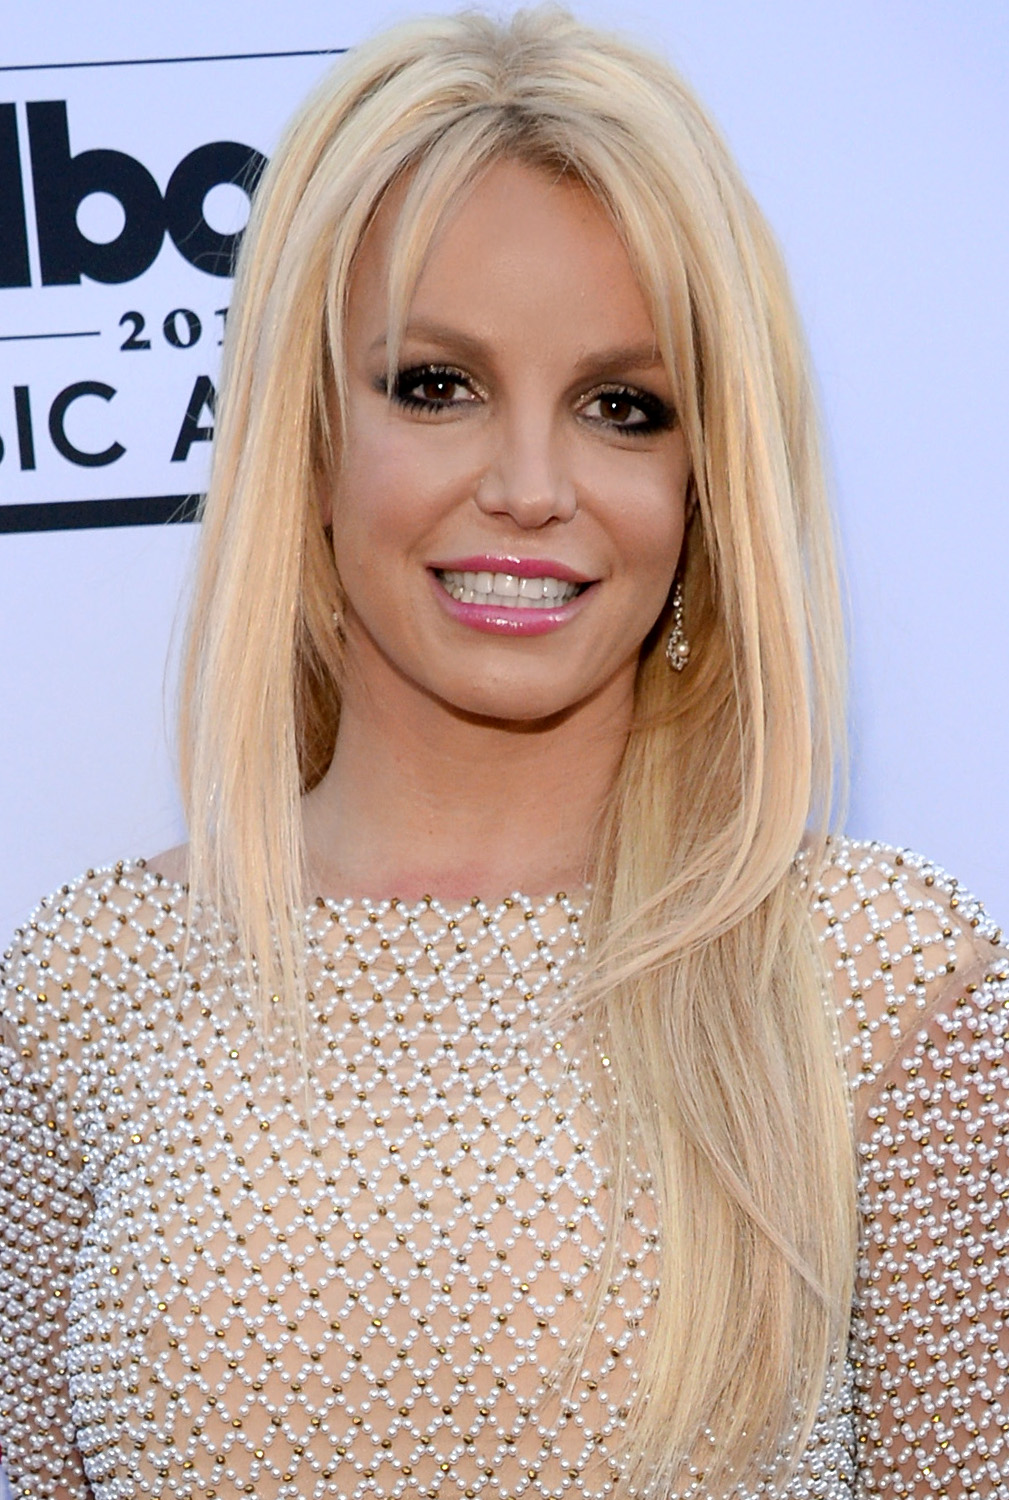 2 million dollars for freedom: Britney Spears' father figured out how to make money on his own daughter